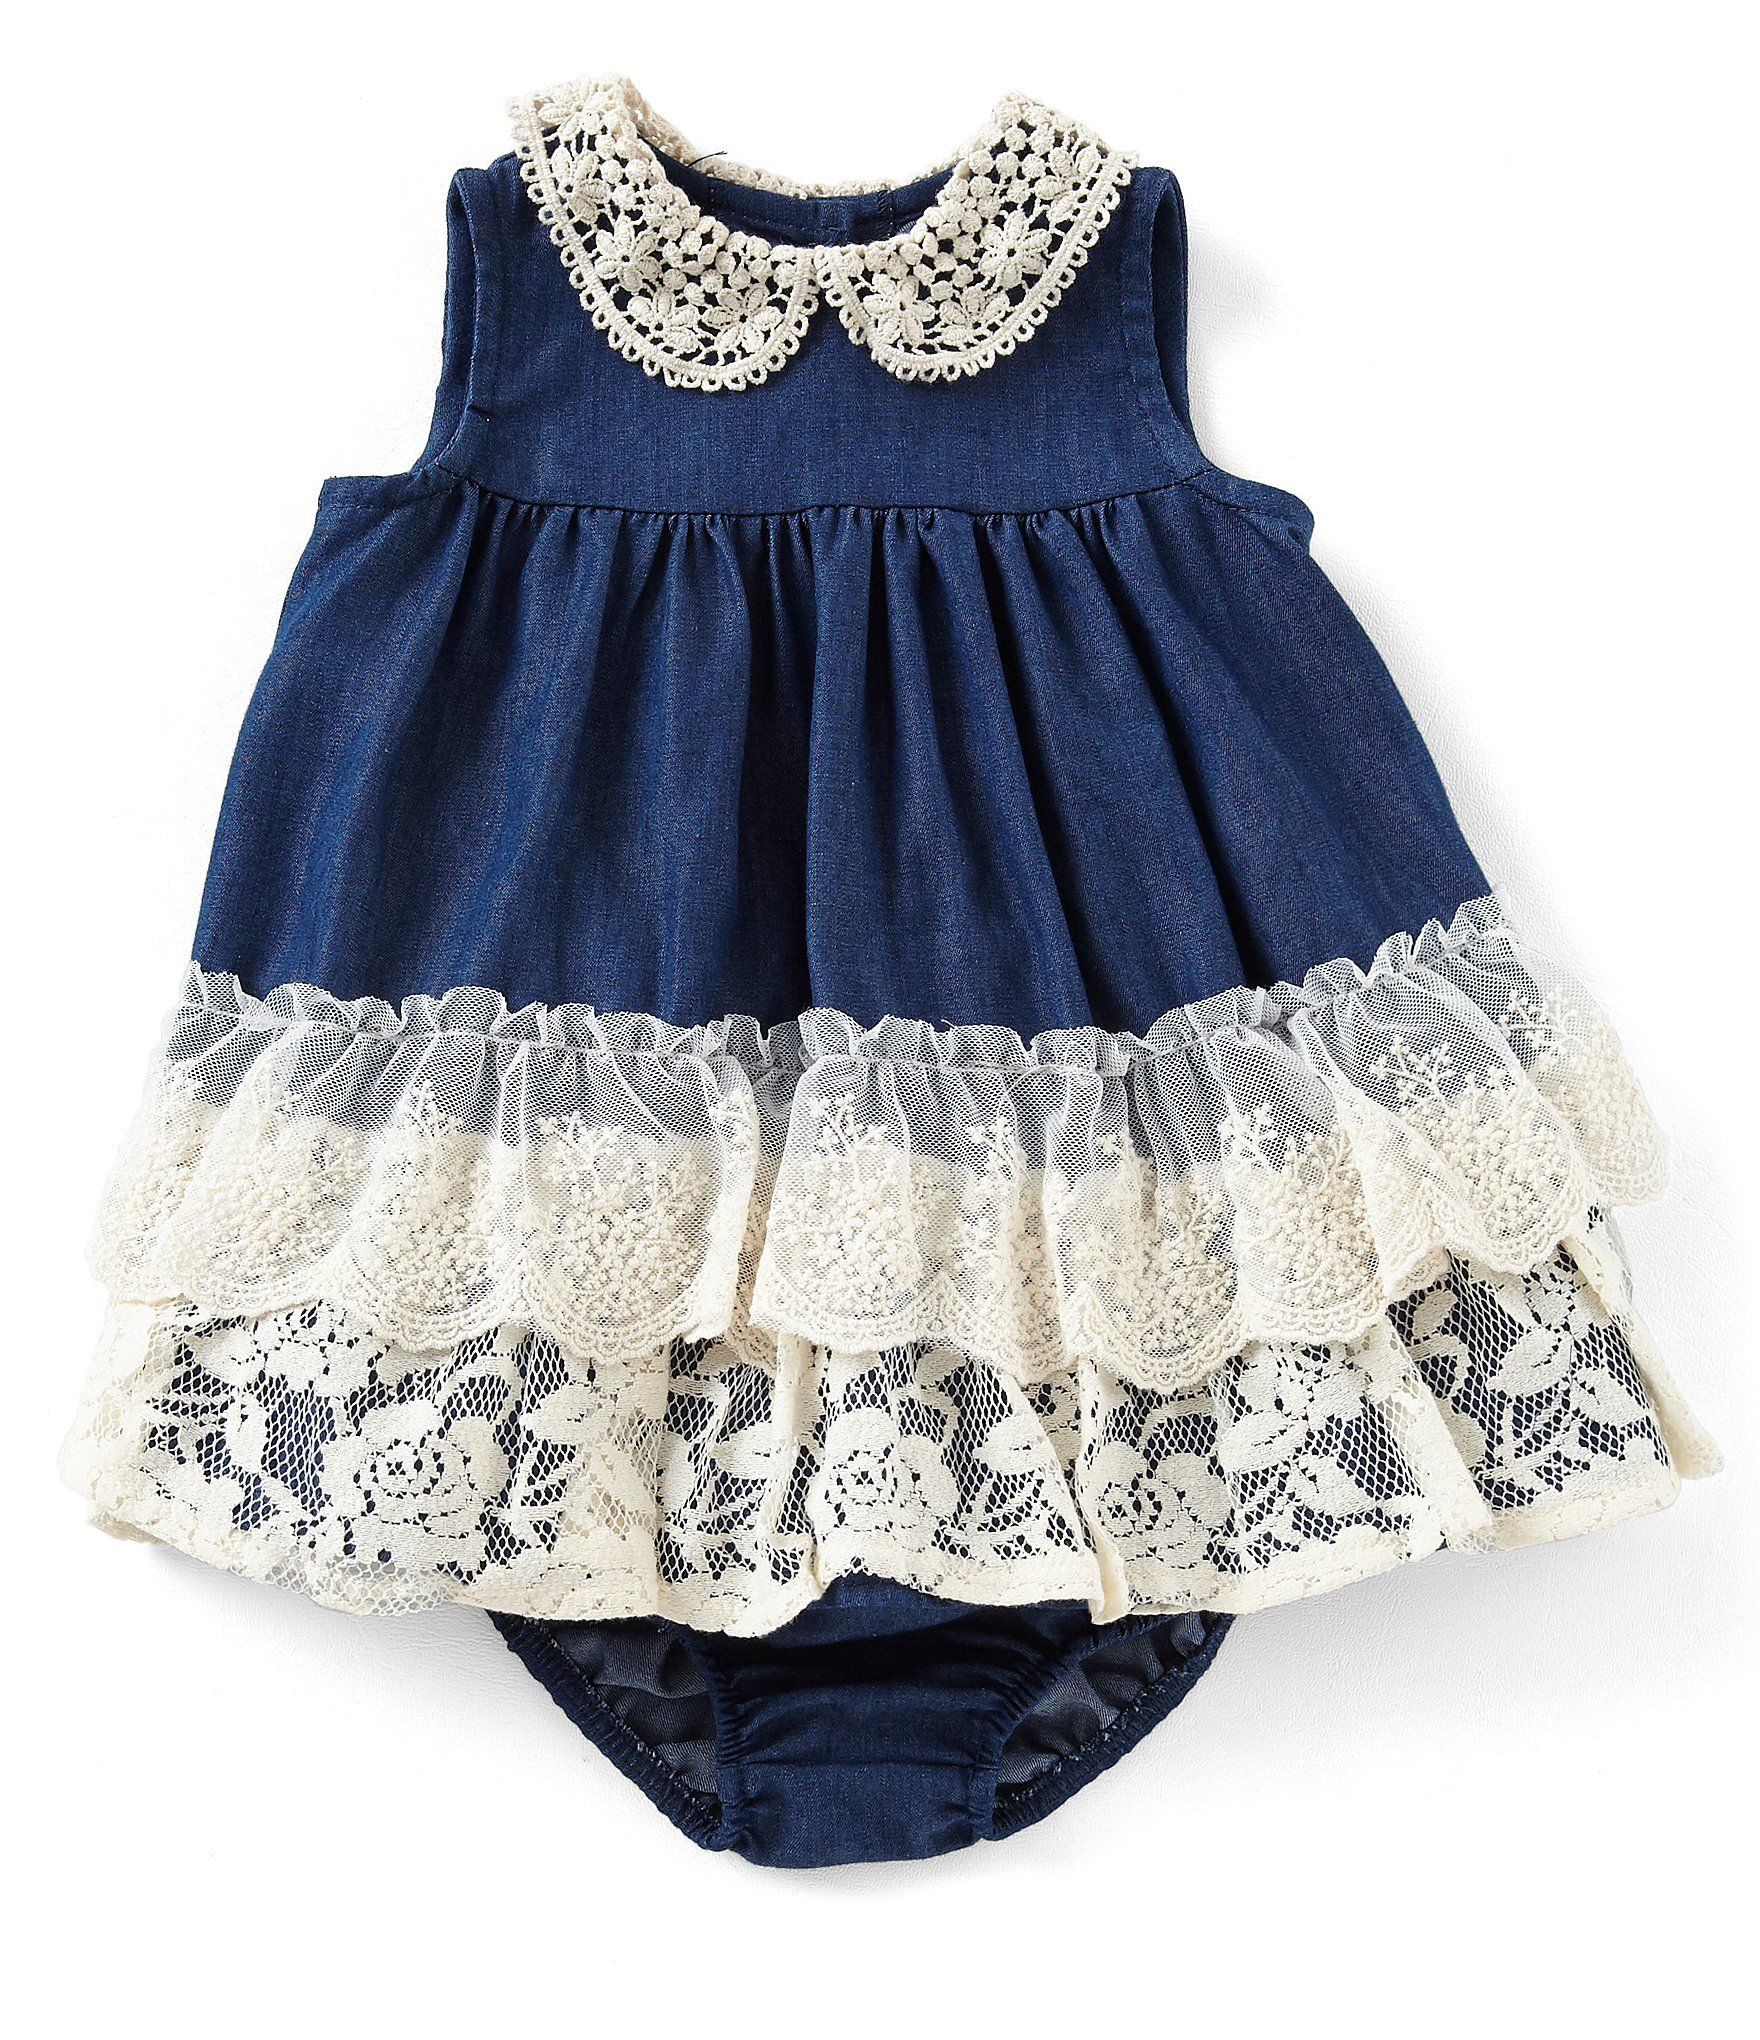 638d80d2f Shop for Bonnie Baby Baby Girls Newborn-24 Months Lace/Denim Fit-And-Flare  Dress at Dillards.com. Visit Dillards.com to find clothing, accessories,  shoes, ...